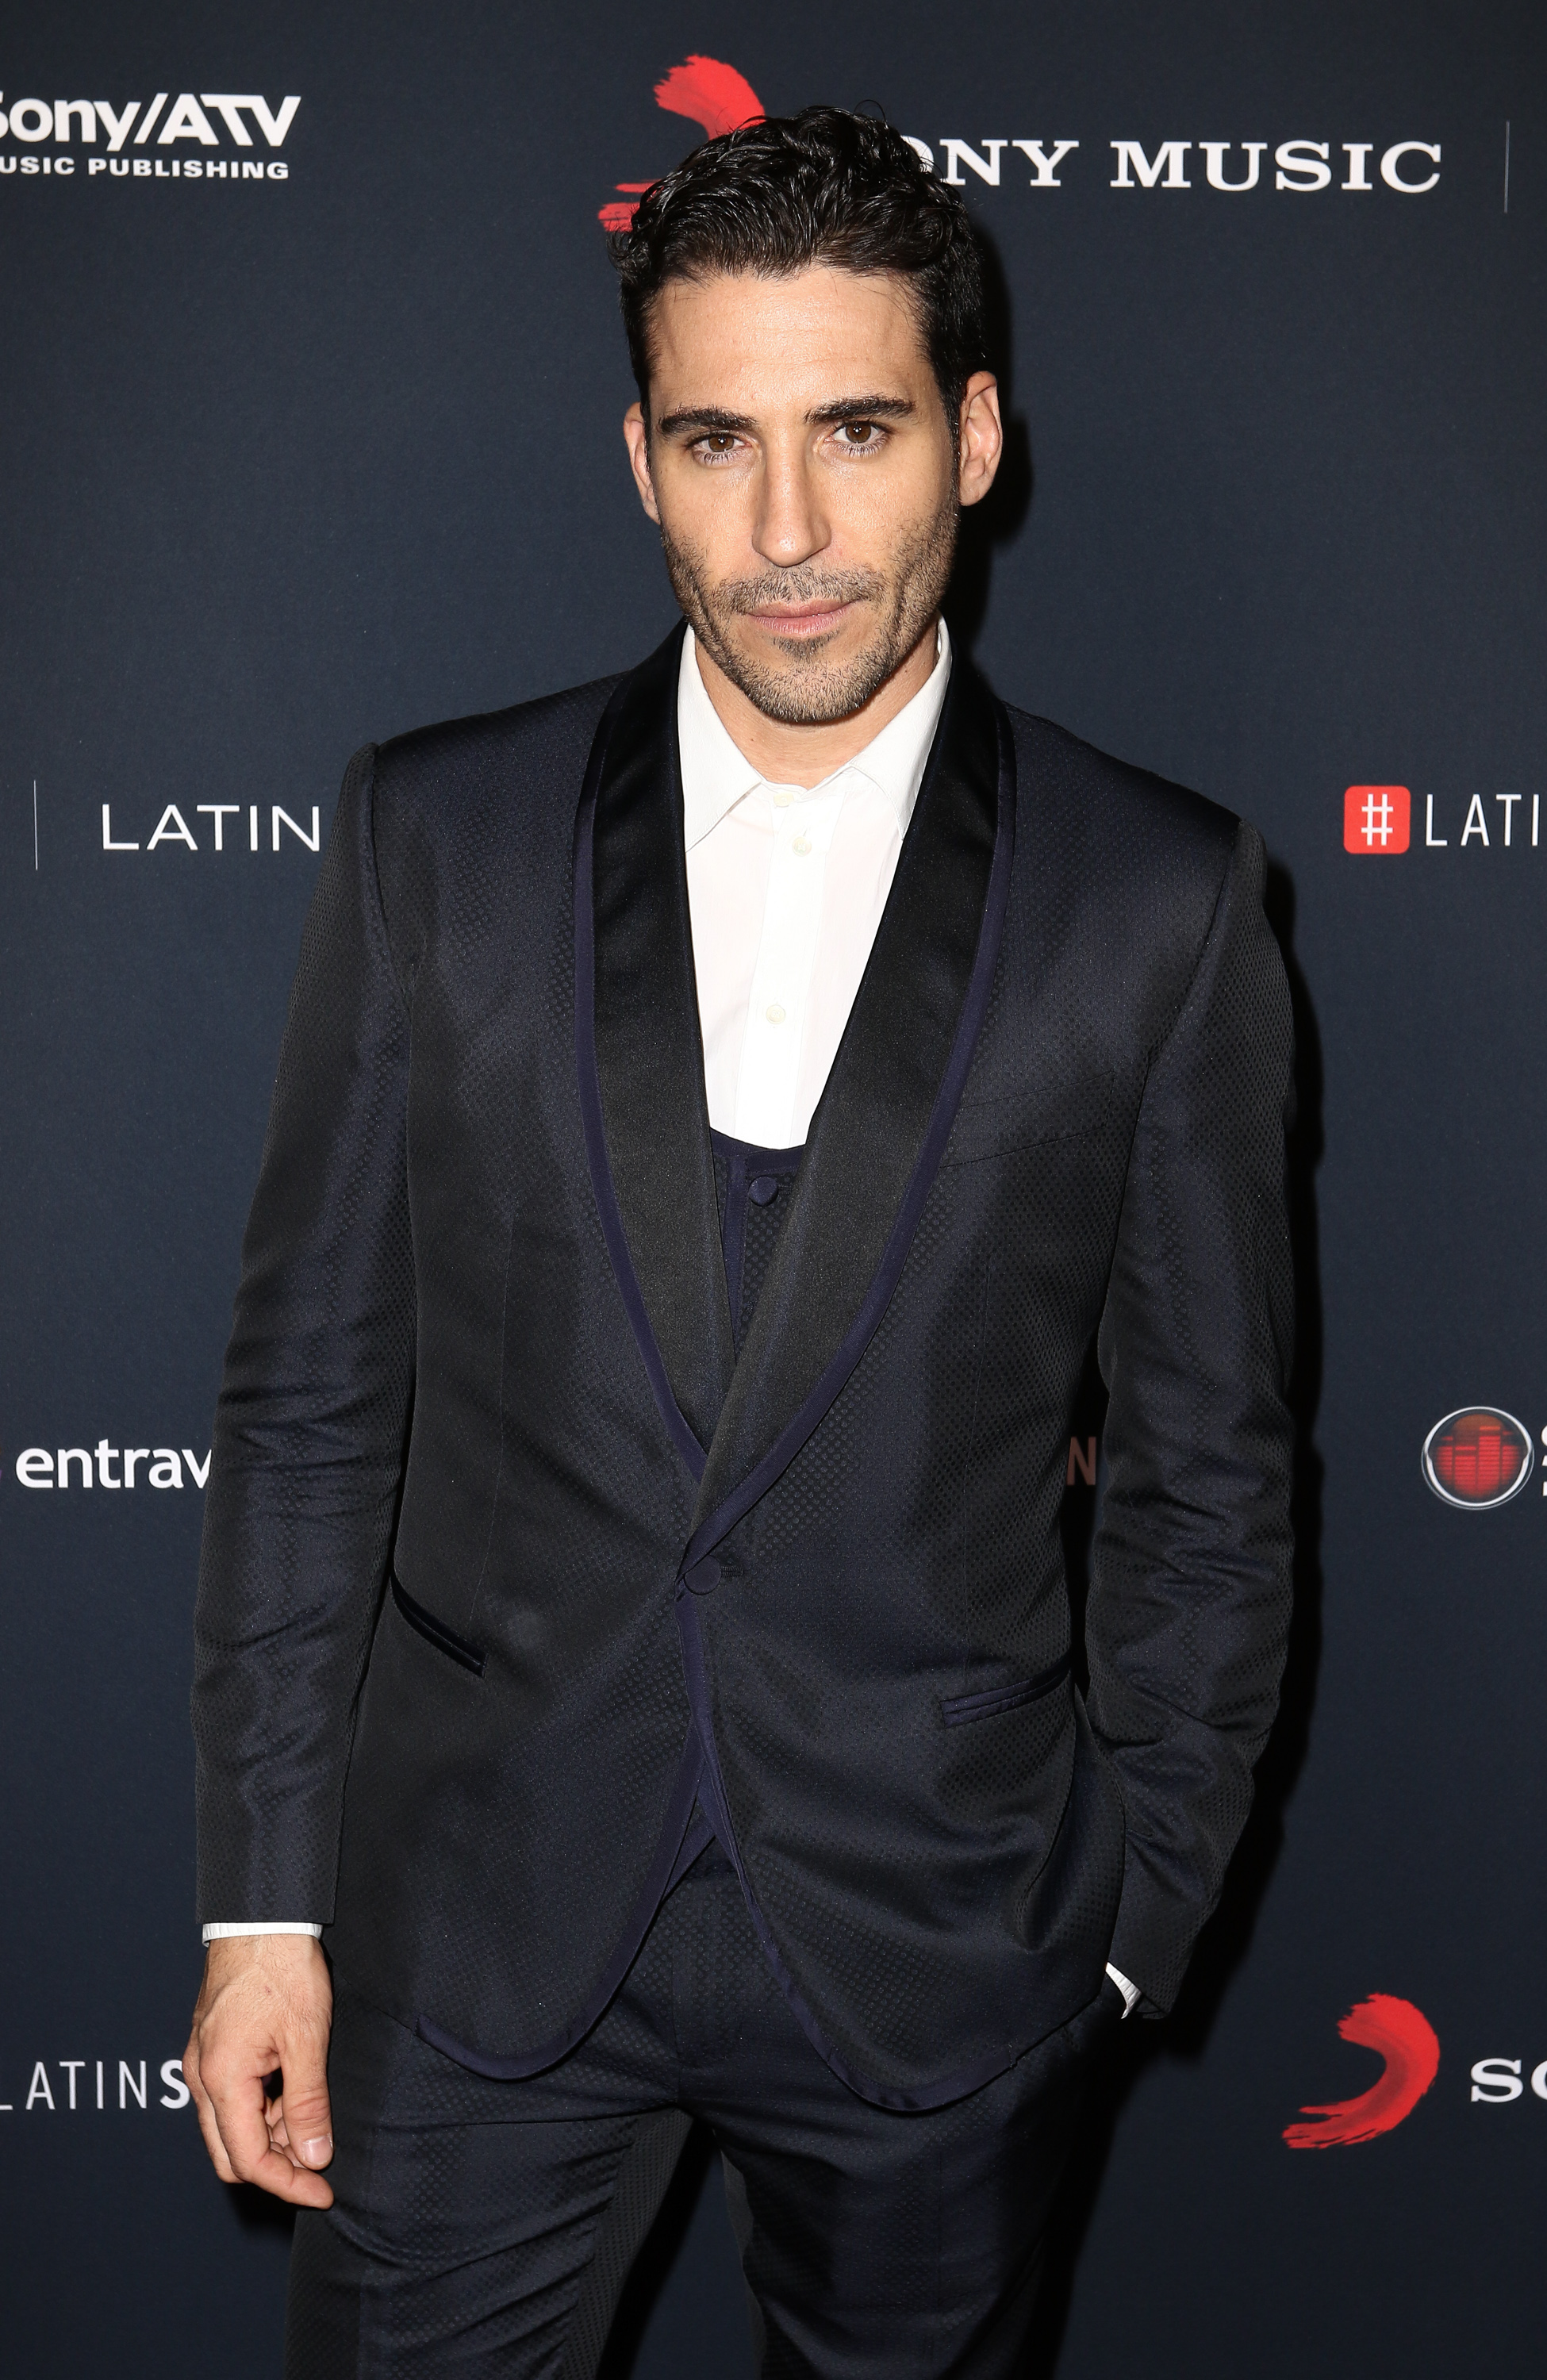 Sony Music Latin Celebrates Its Artists At Their Annual Latin Grammy After Party